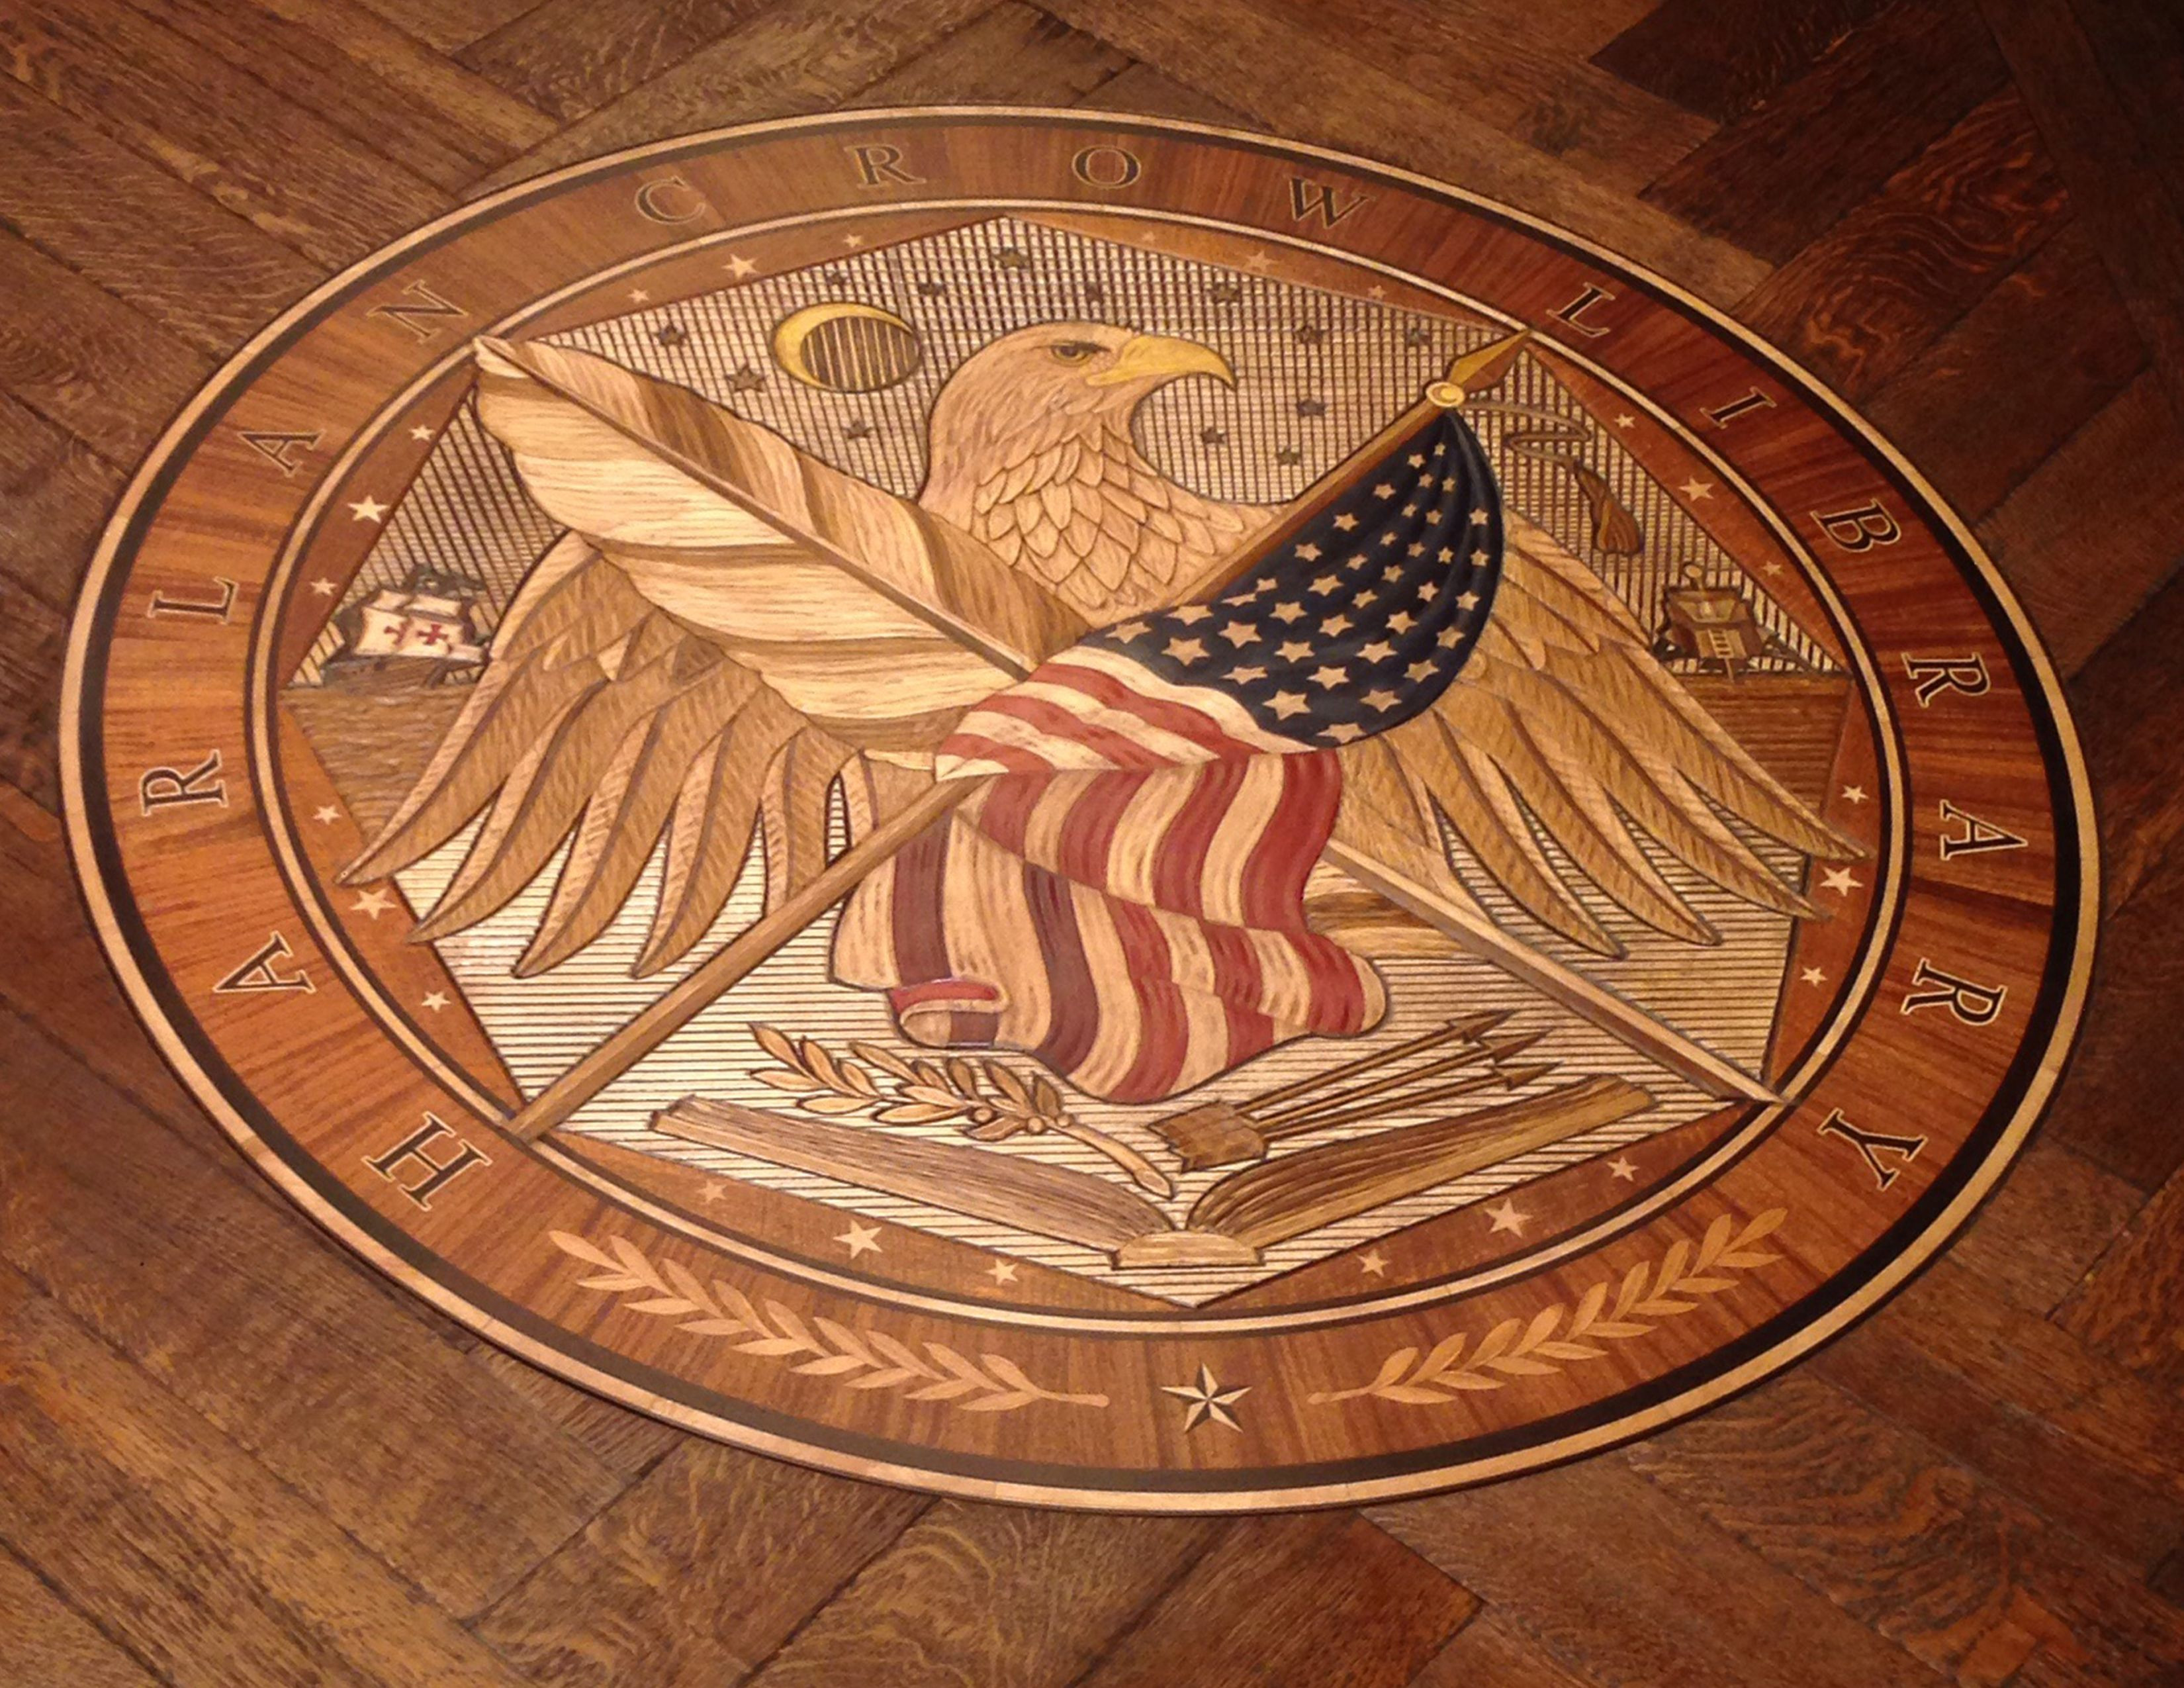 hardwood floor installation dallas of extremely custom 3d medallion laser cnc then handcarved www in extremely custom 3d medallion laser cnc then handcarved www woodwright net